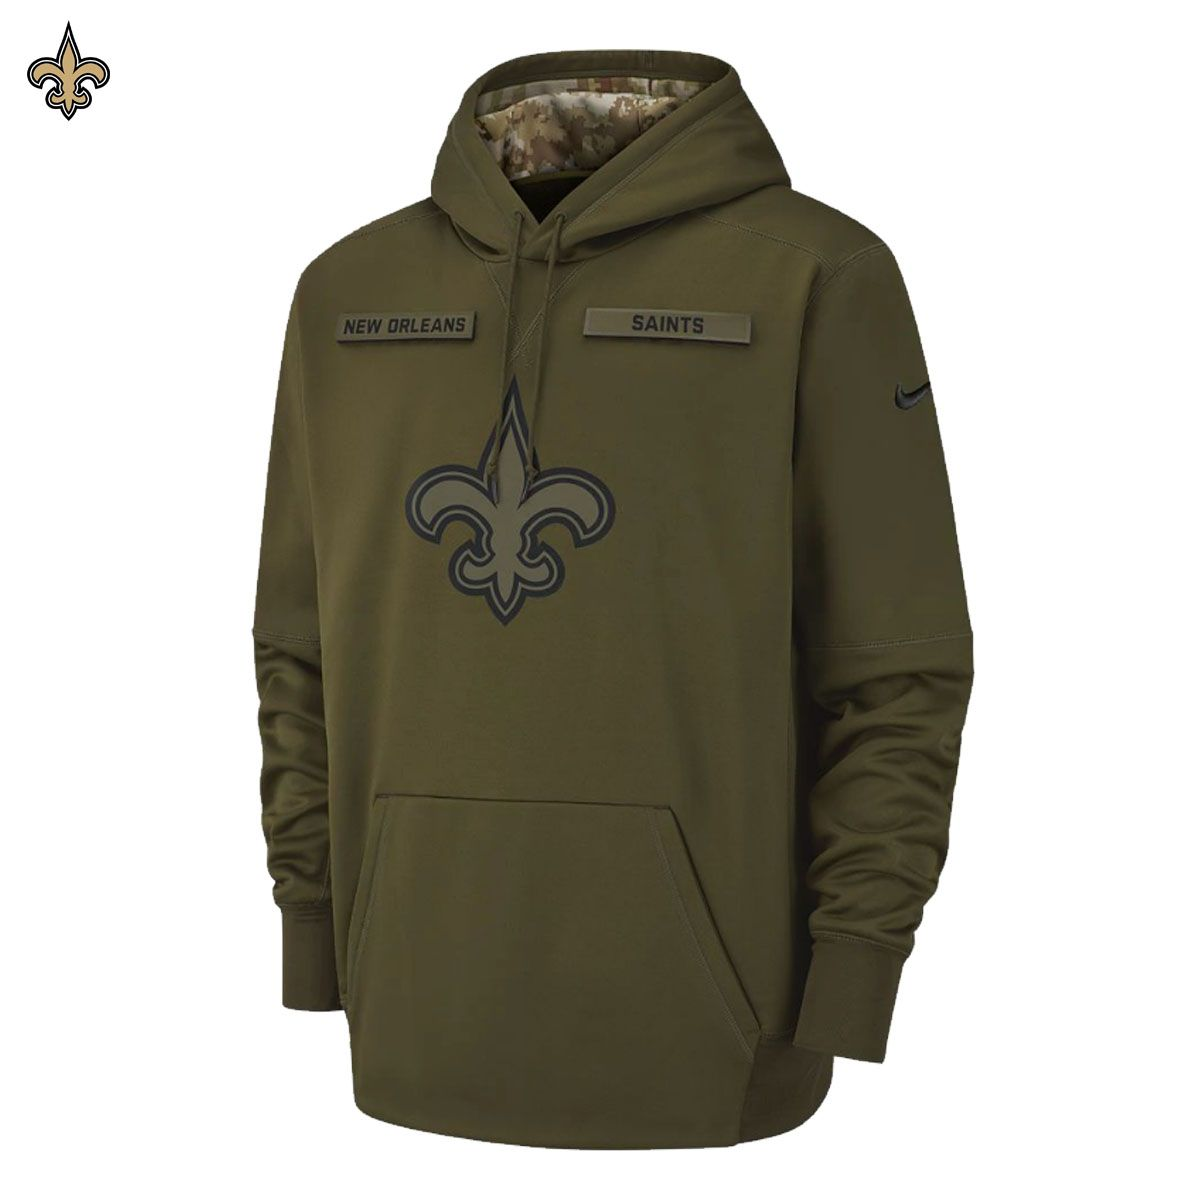 de88d406c993 ... closeout new nike 2018 nfl salute to service new orleans saints therma  po hoodie limited salute